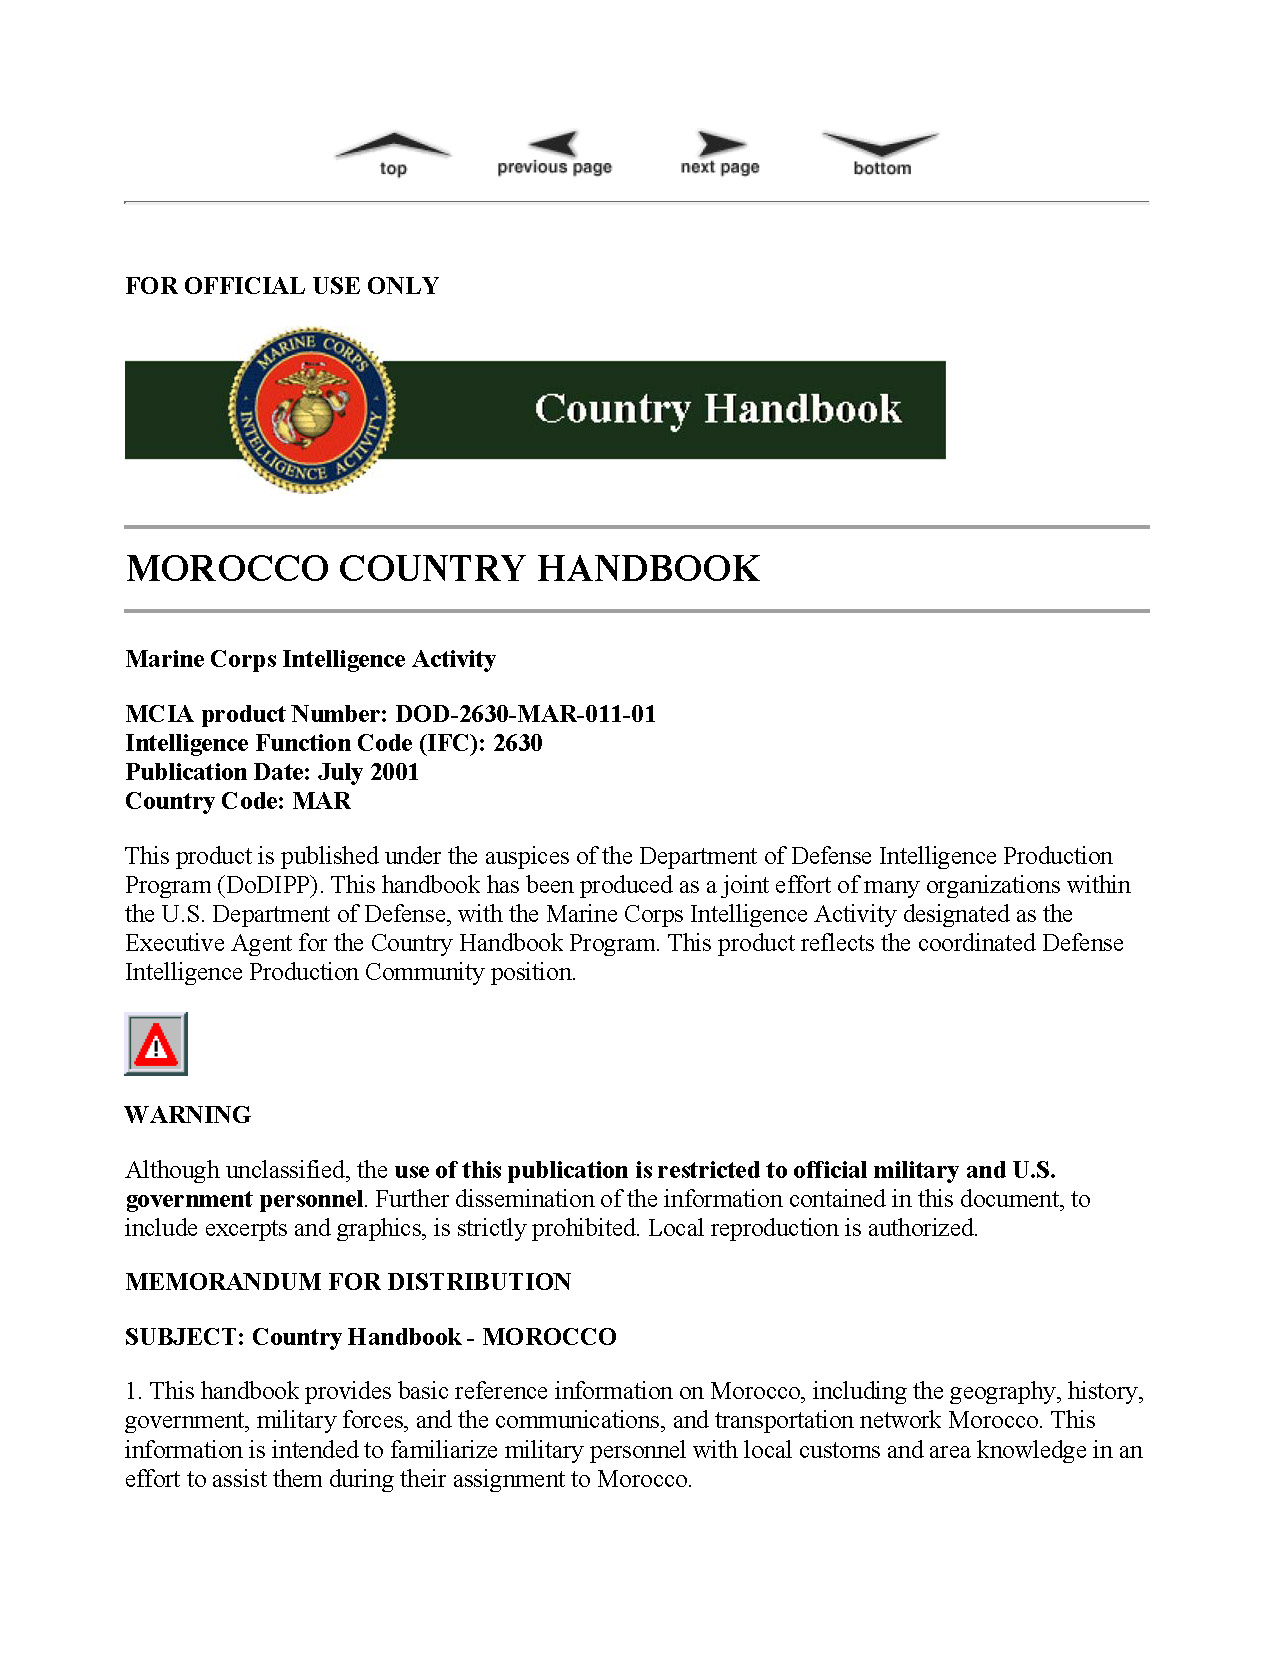 Marine Corps Intelligence Activity Morocco Country Handbook ...